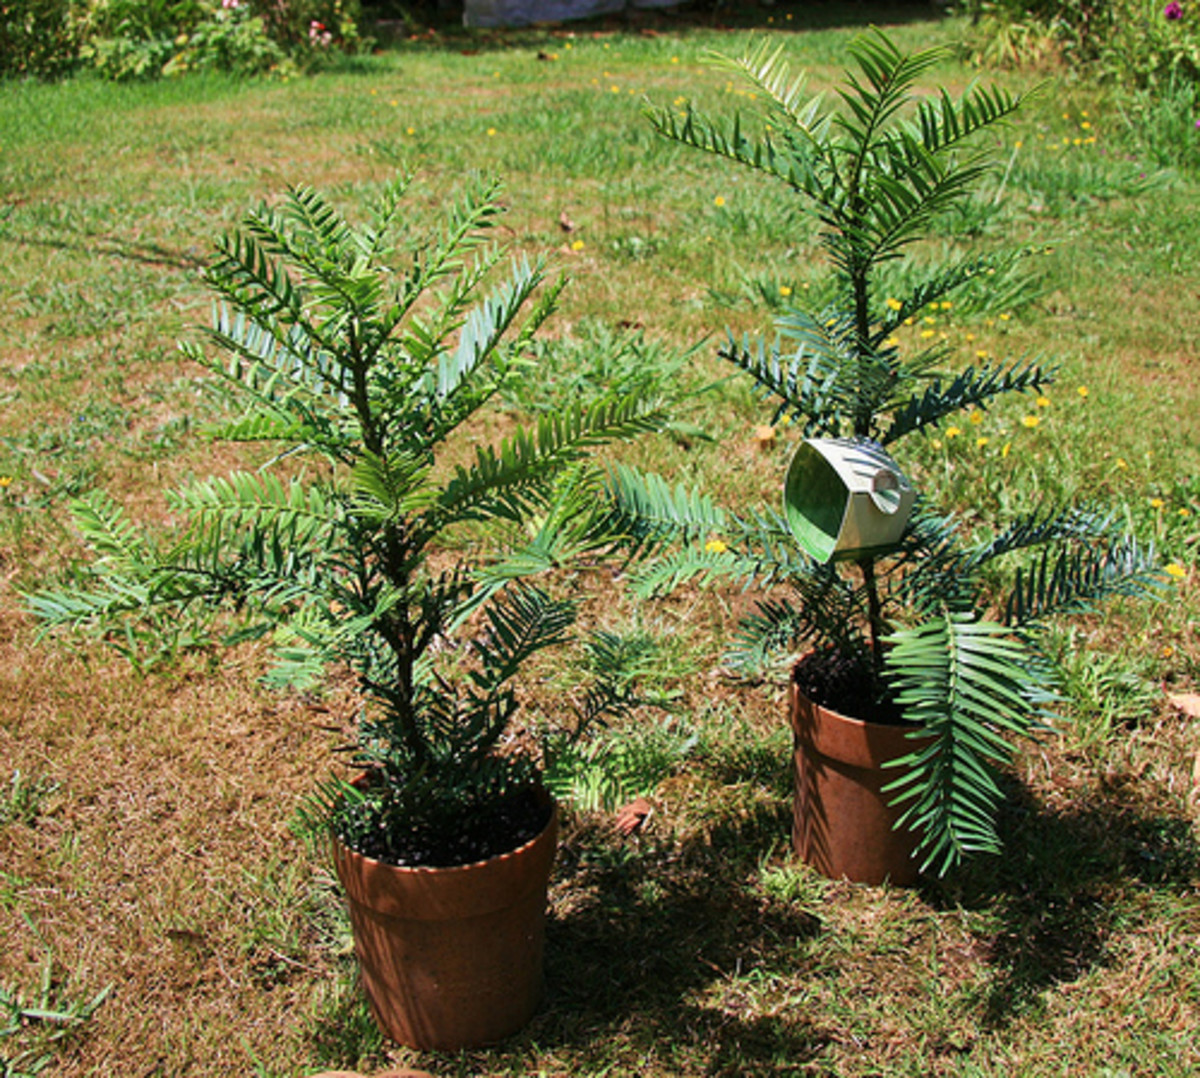 Young Wollemi pines